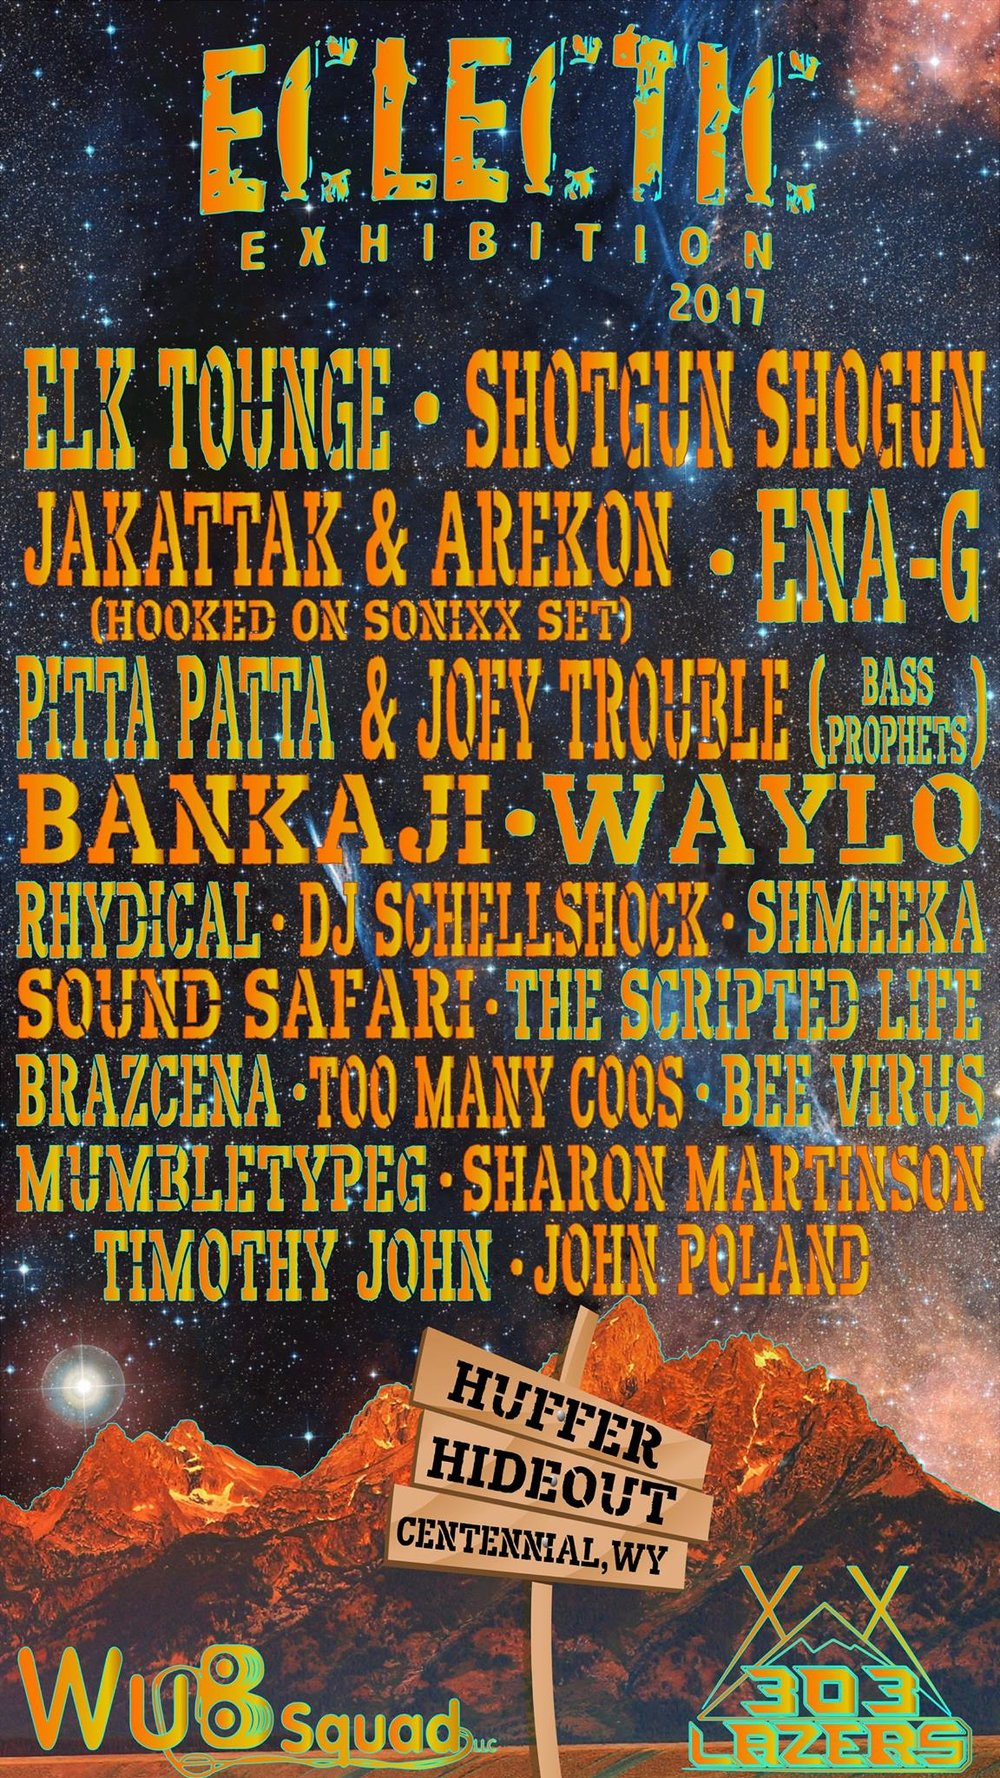 2017-08-16 Eclectic Exhibition Music Festival Poster Centennial Wyoming.jpg